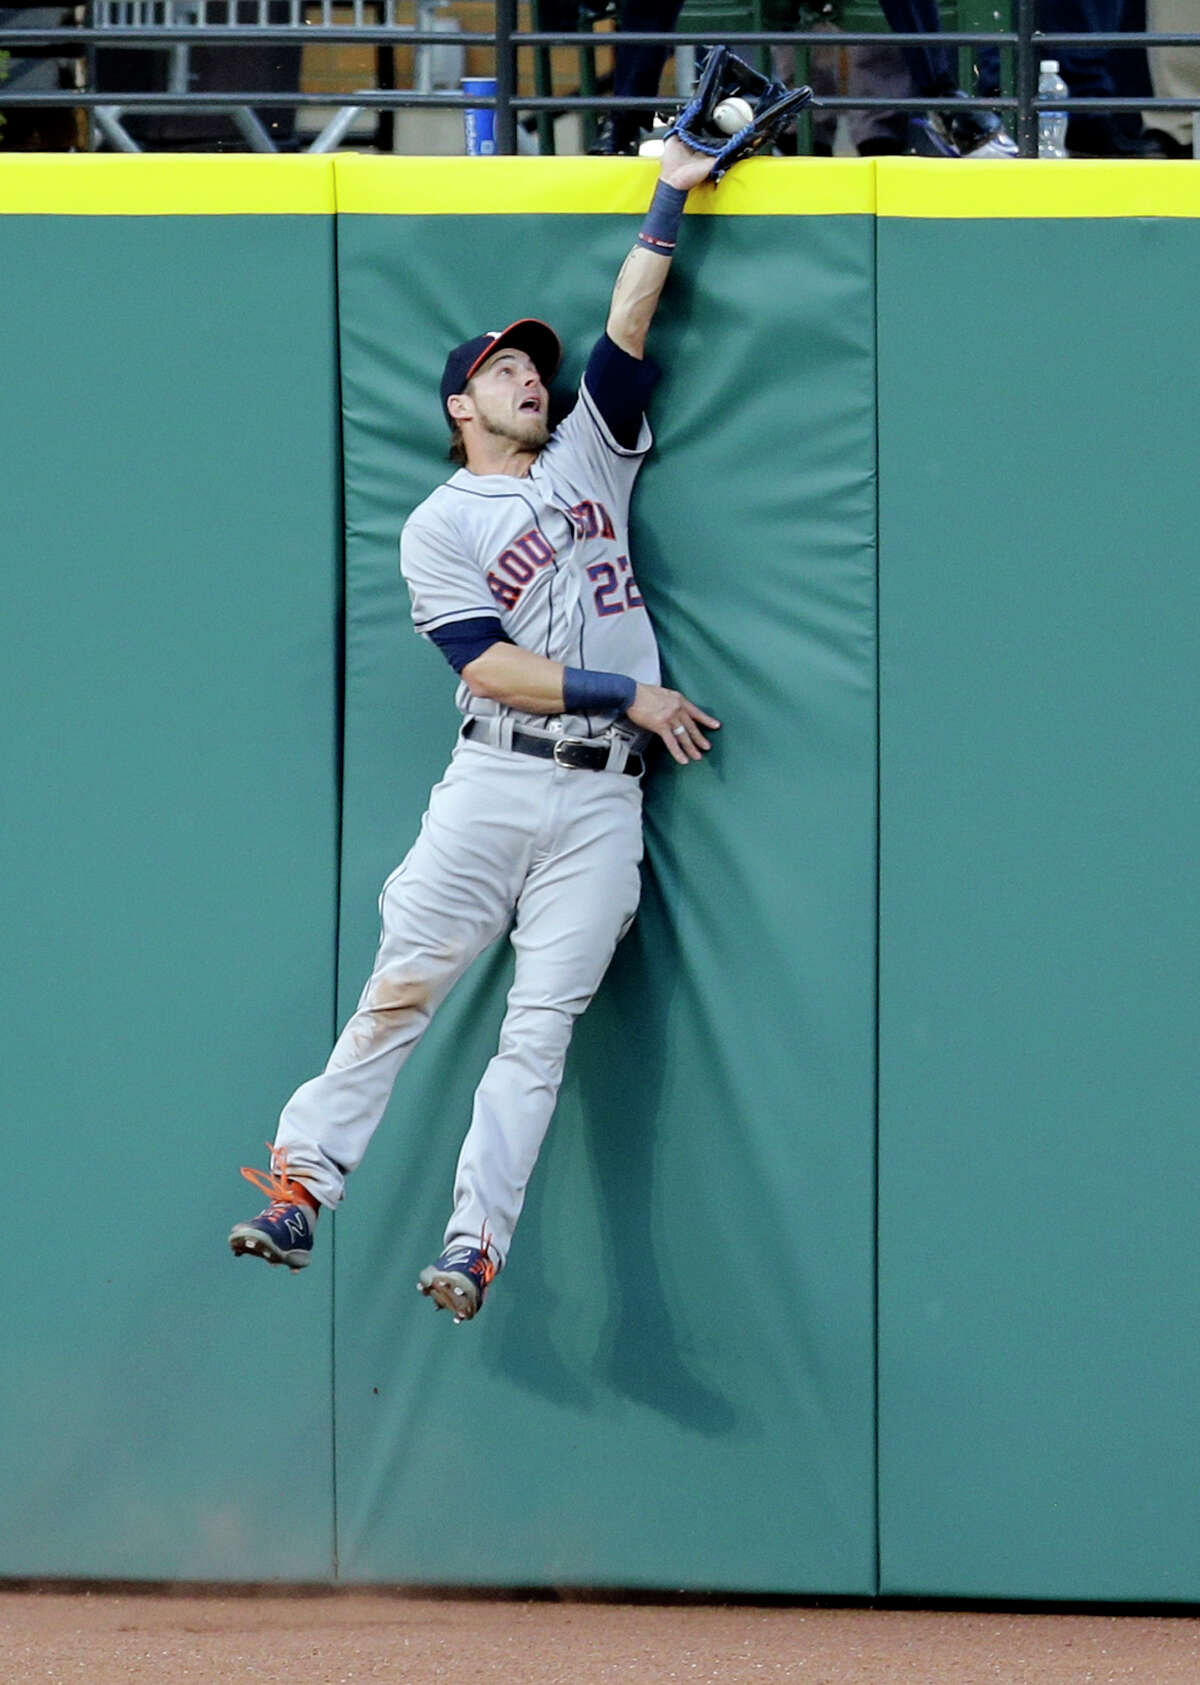 Houston Astros' Josh Reddick reaches for a ball hit by Cleveland Indians' Jason Kipnis in the fifth inning of a baseball game, Tuesday, April 25, 2017, in Cleveland. Kipnis was out on the play. (AP Photo/Tony Dejak)